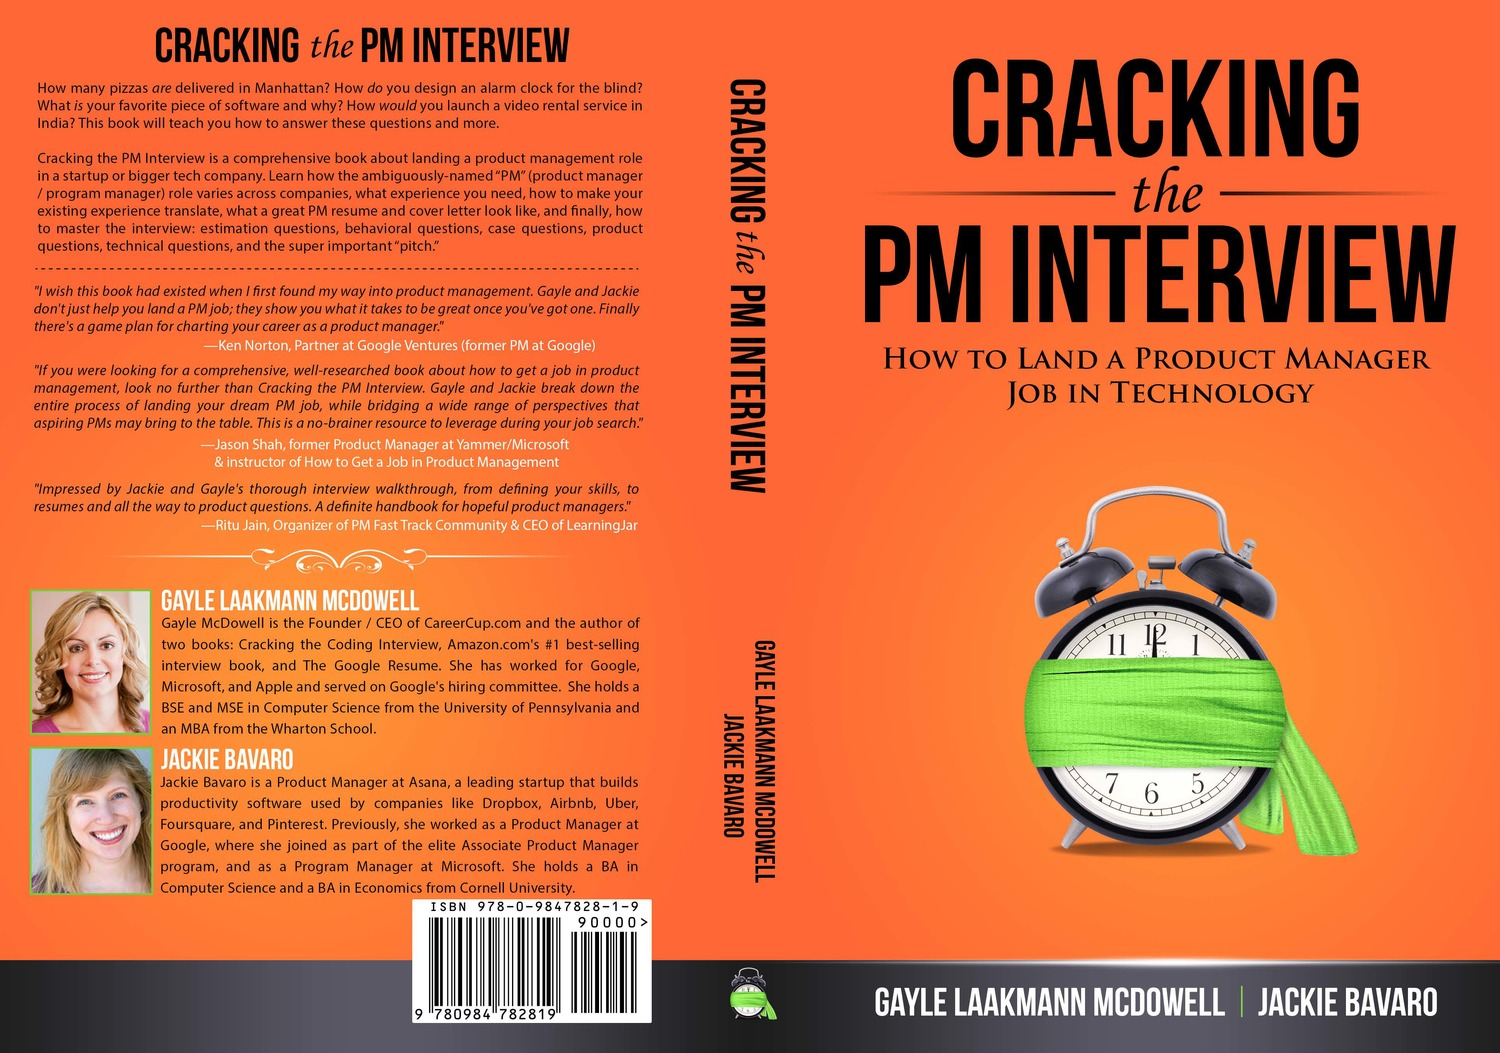 Cracking the PM Interview: How to Land a Product Manager Job in Technology - I really like this book by Jackie Bavaro and Gayle Laakmann McDowell about preparing for product management interviews because it covers all of the bases of product management. It includes how to approach case questions, technical content, behavioral questions, estimation problems, and more. It's a great refresher and primer for anyone looking to get into product and anyone who is about to interview and has experience in the field.